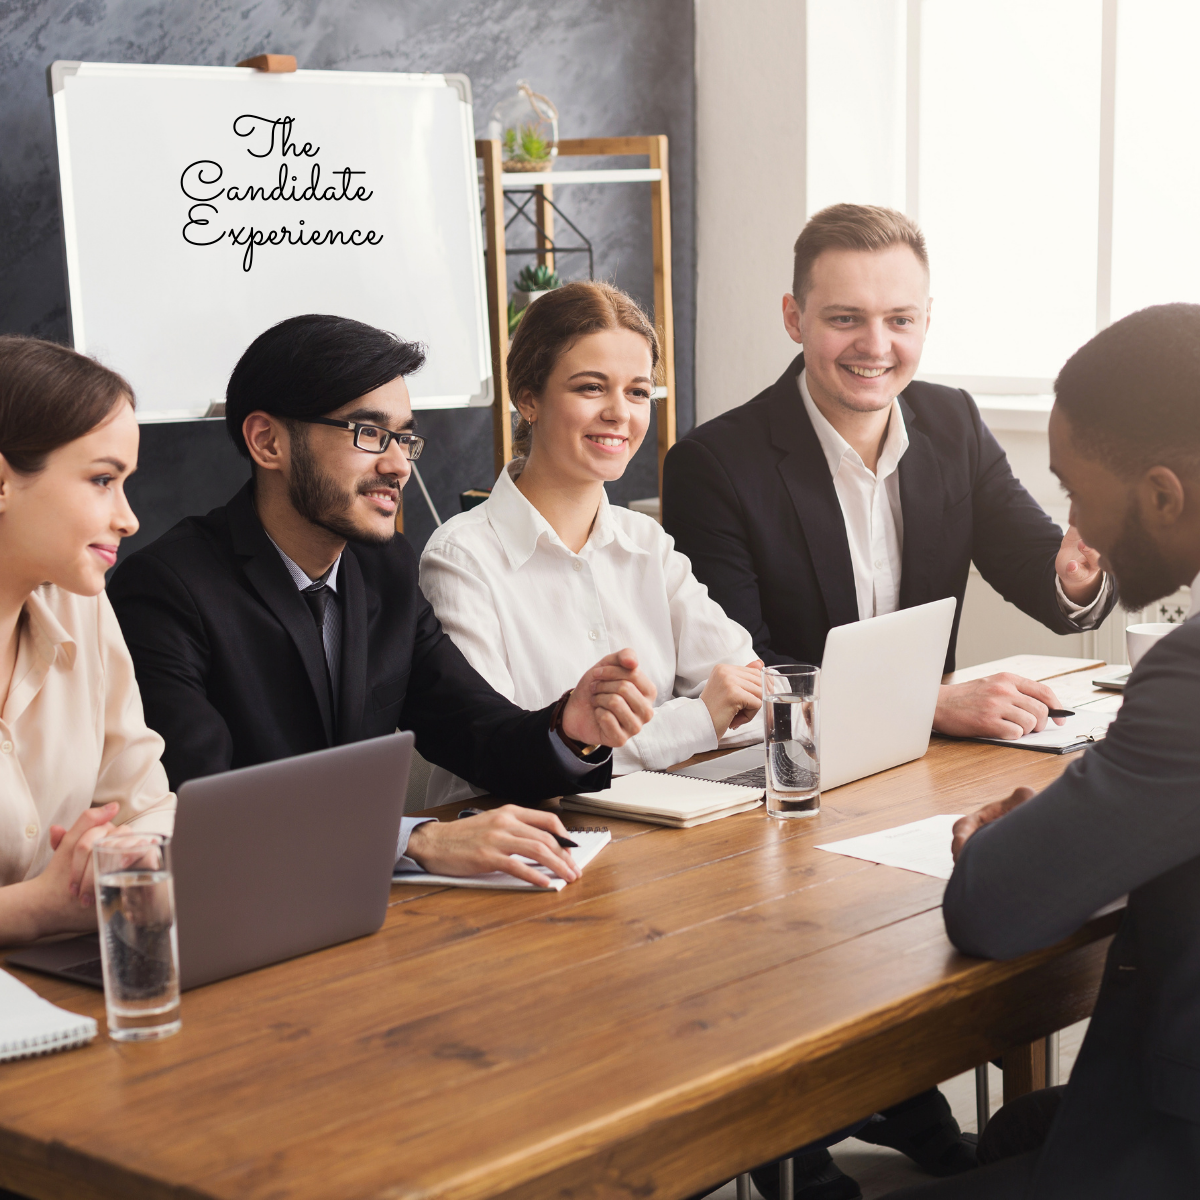 The Candidate Experience is all the rage! Are you measuring it?